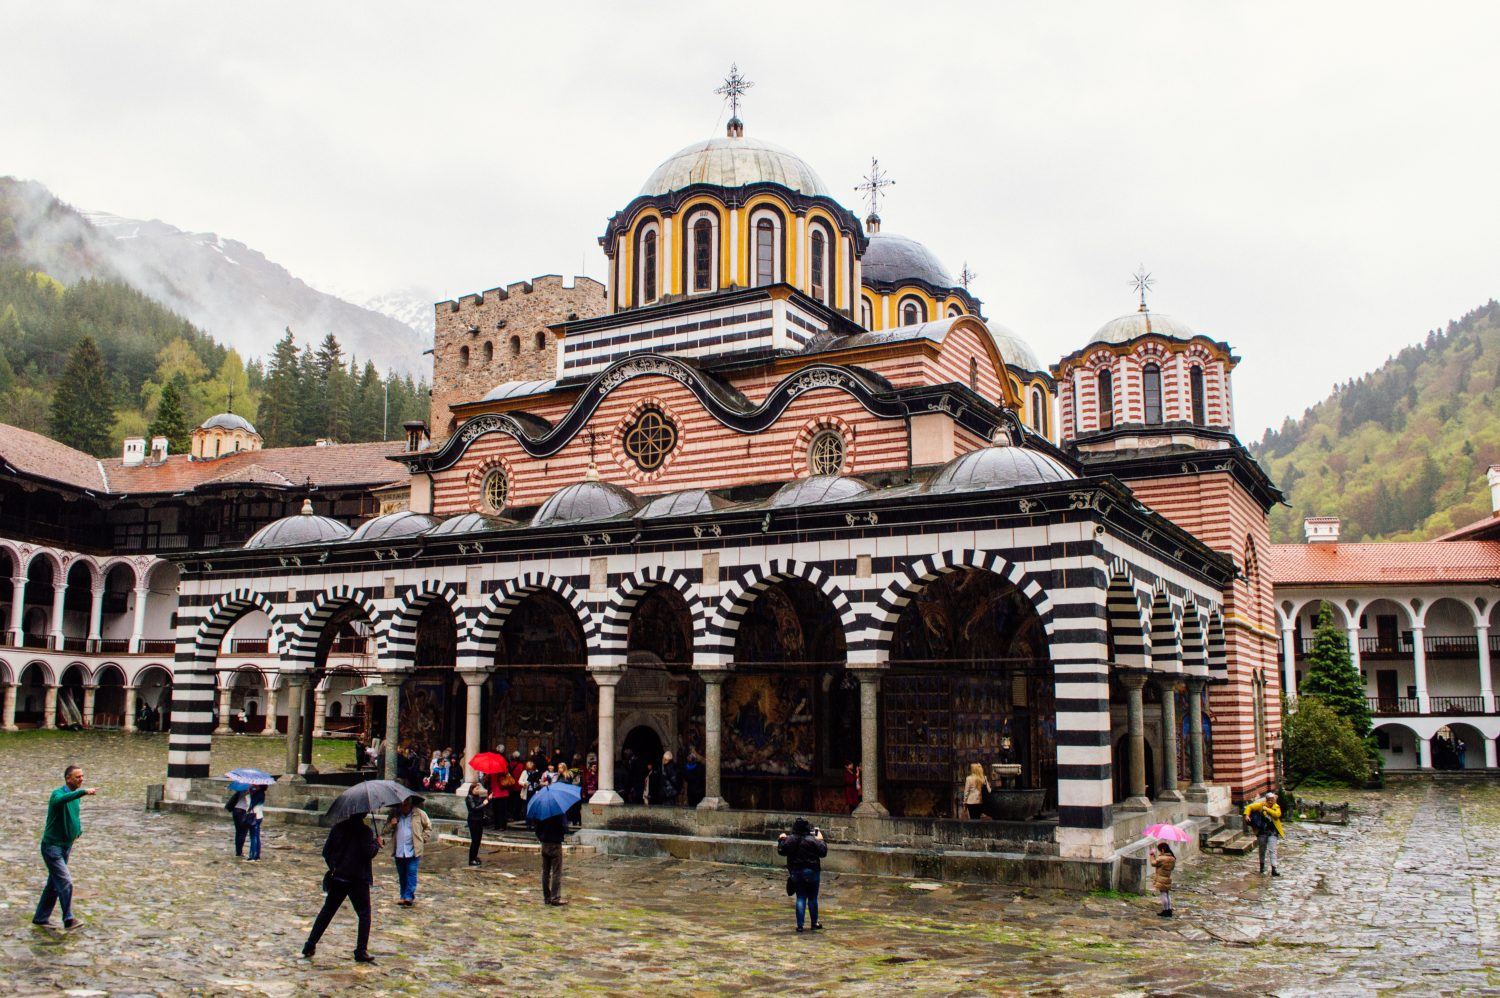 Travel inspiration for Bulgaria! This affordable, beautiful and off-the-beaten path destination in Eastern Europe is a MUST for any bucket list. Check out this post to see why.